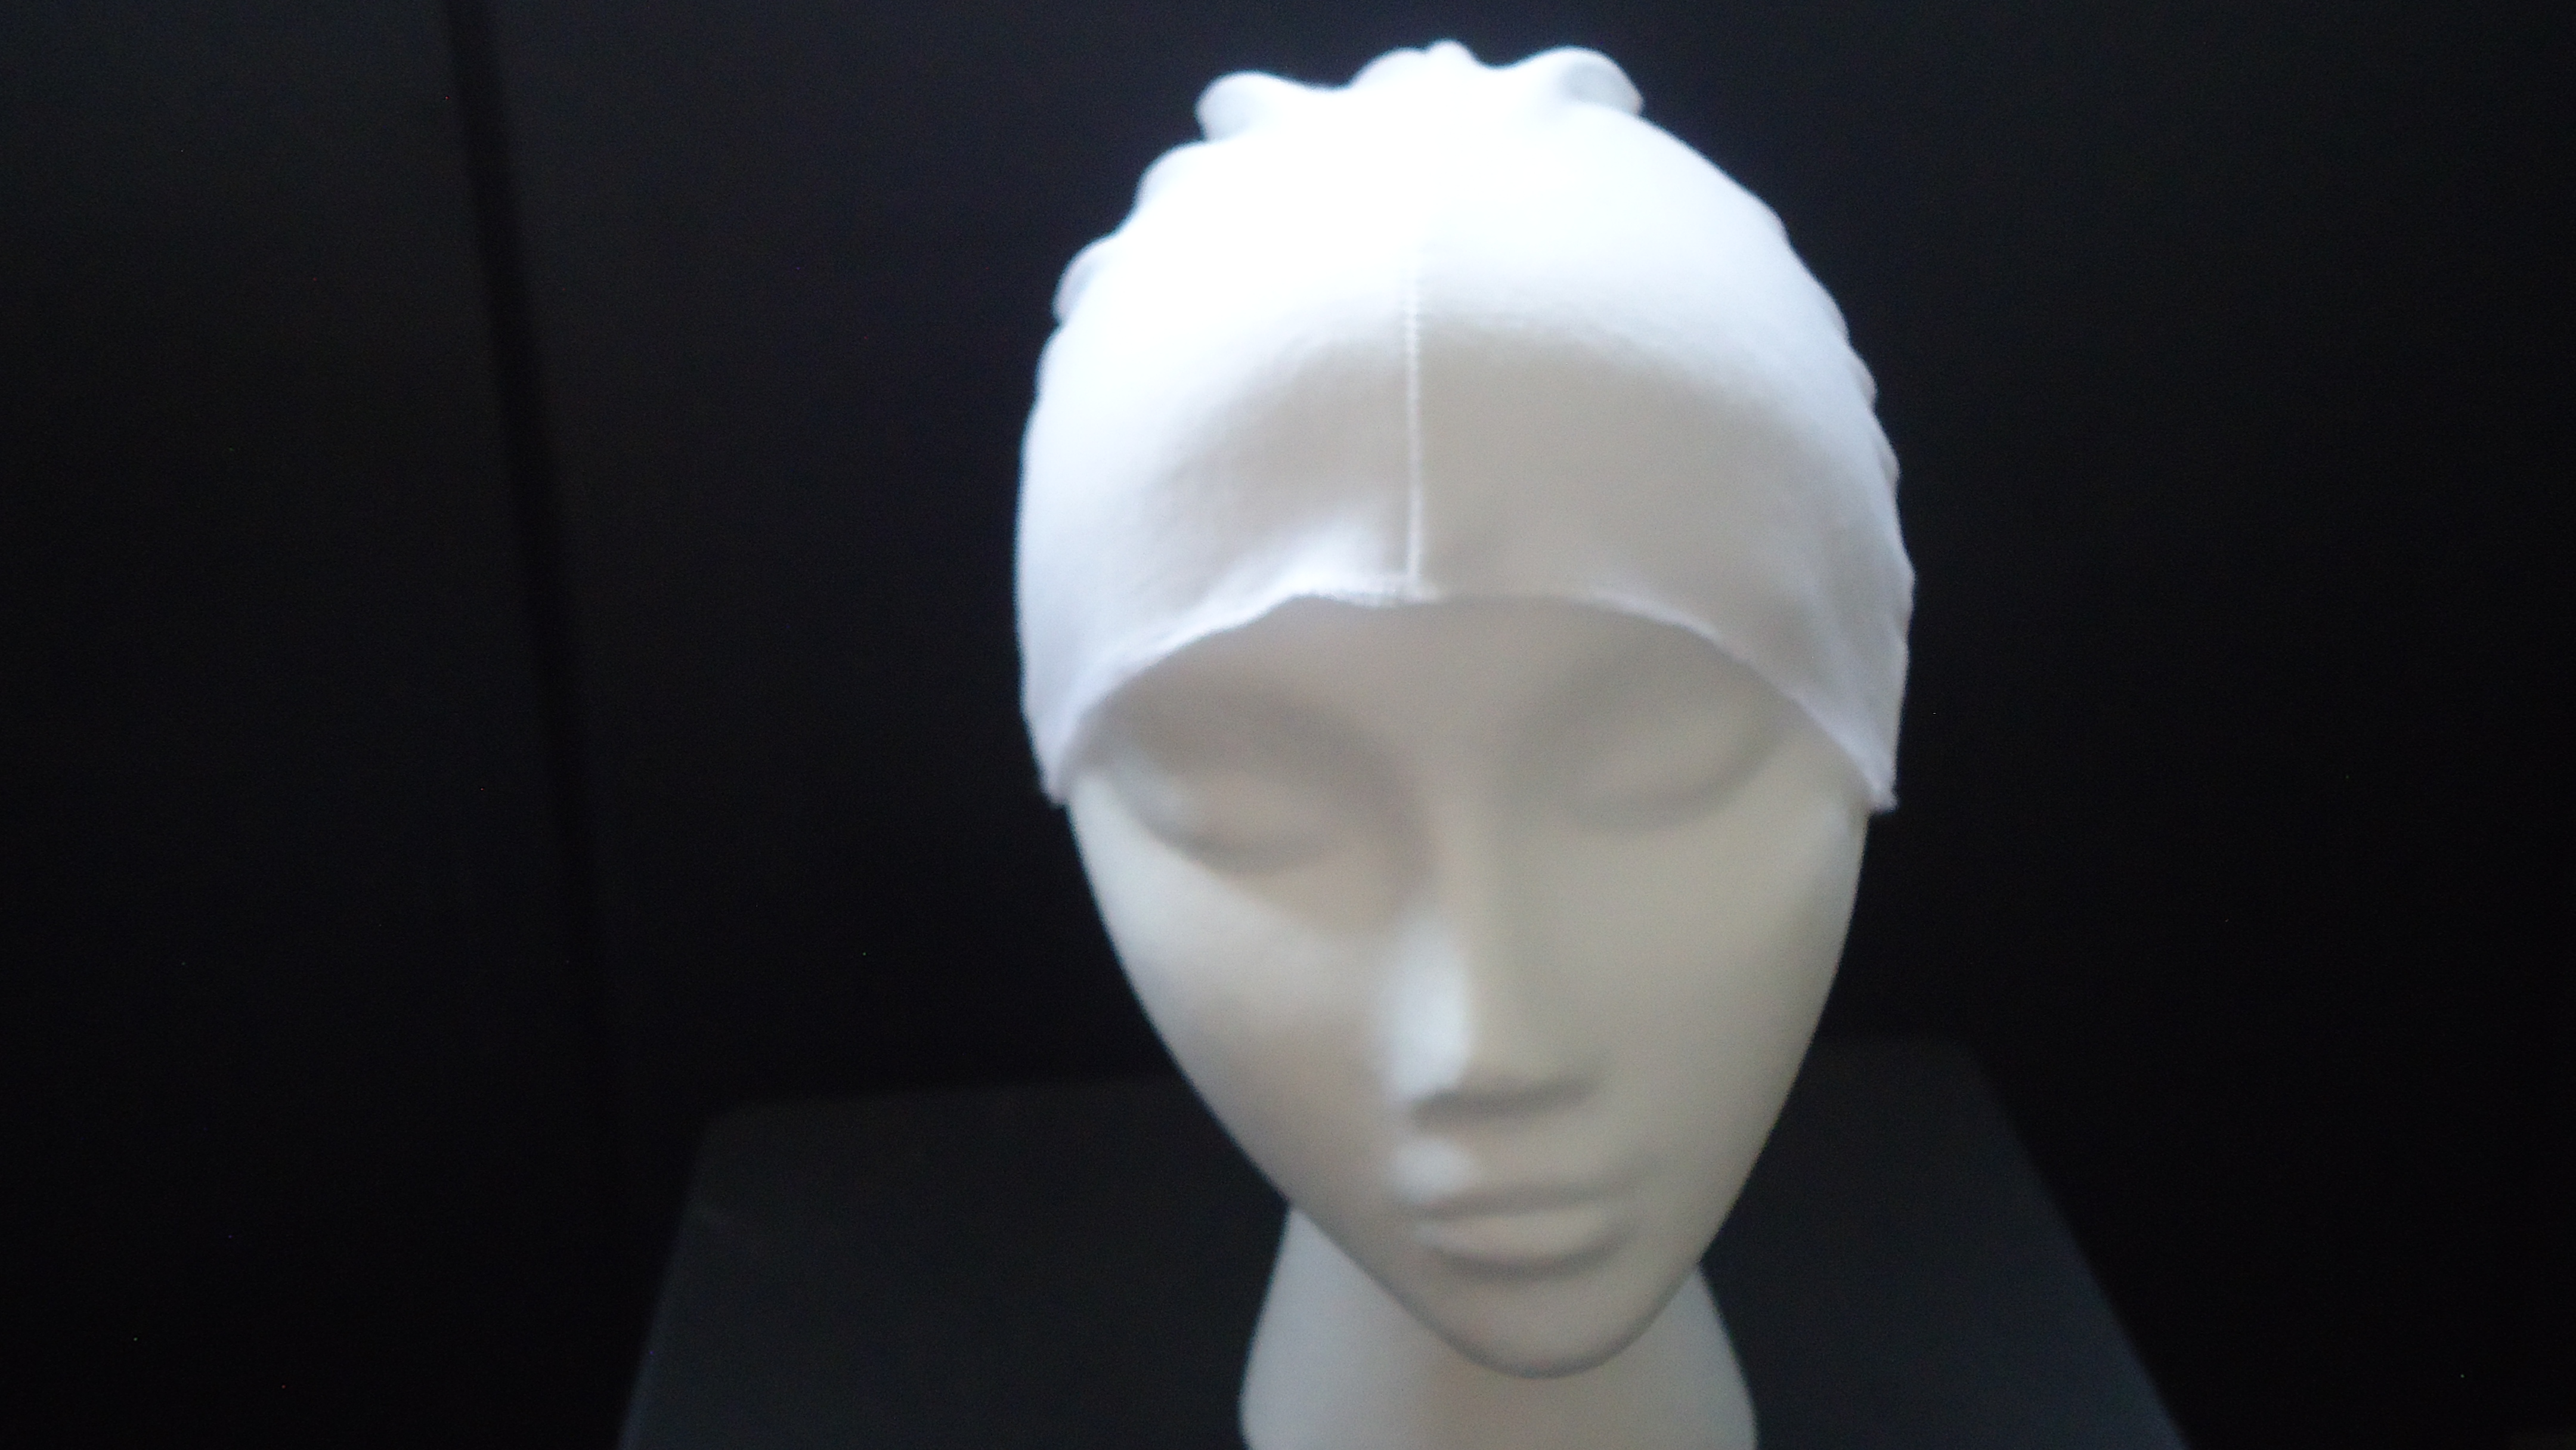 #WCCOTTON-WH FASHION-AURA TM JERSEY COTTON WIG CAP BY POLLY PRODUCTS CO.